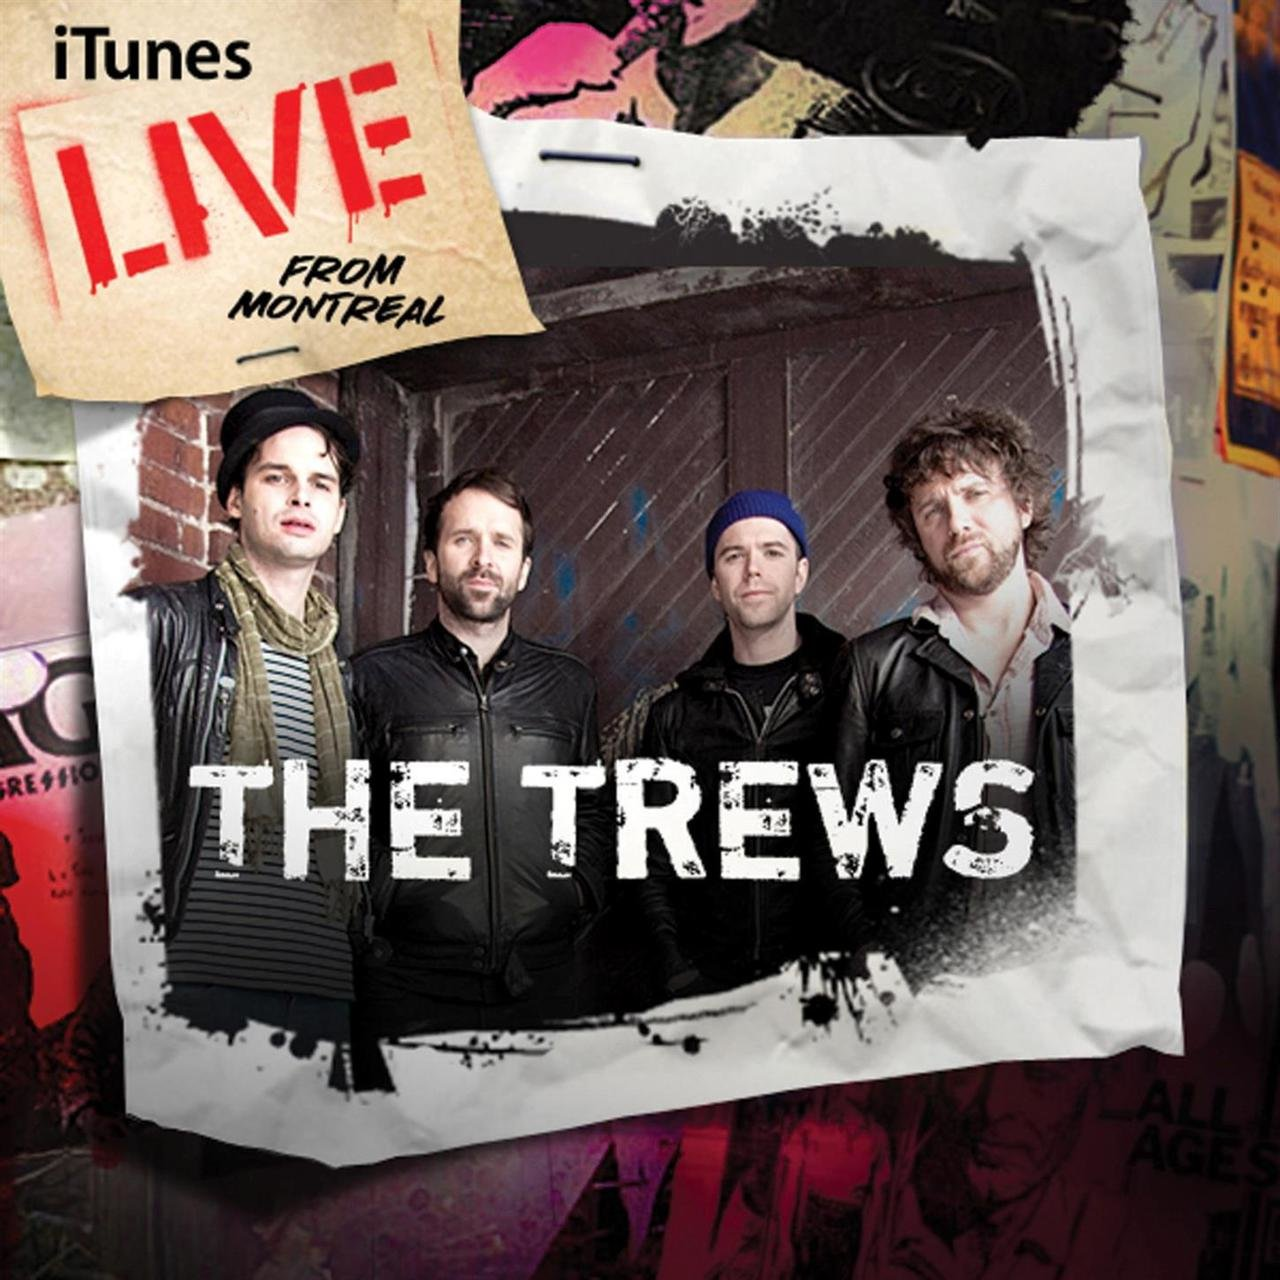 iTunes Live from Montreal